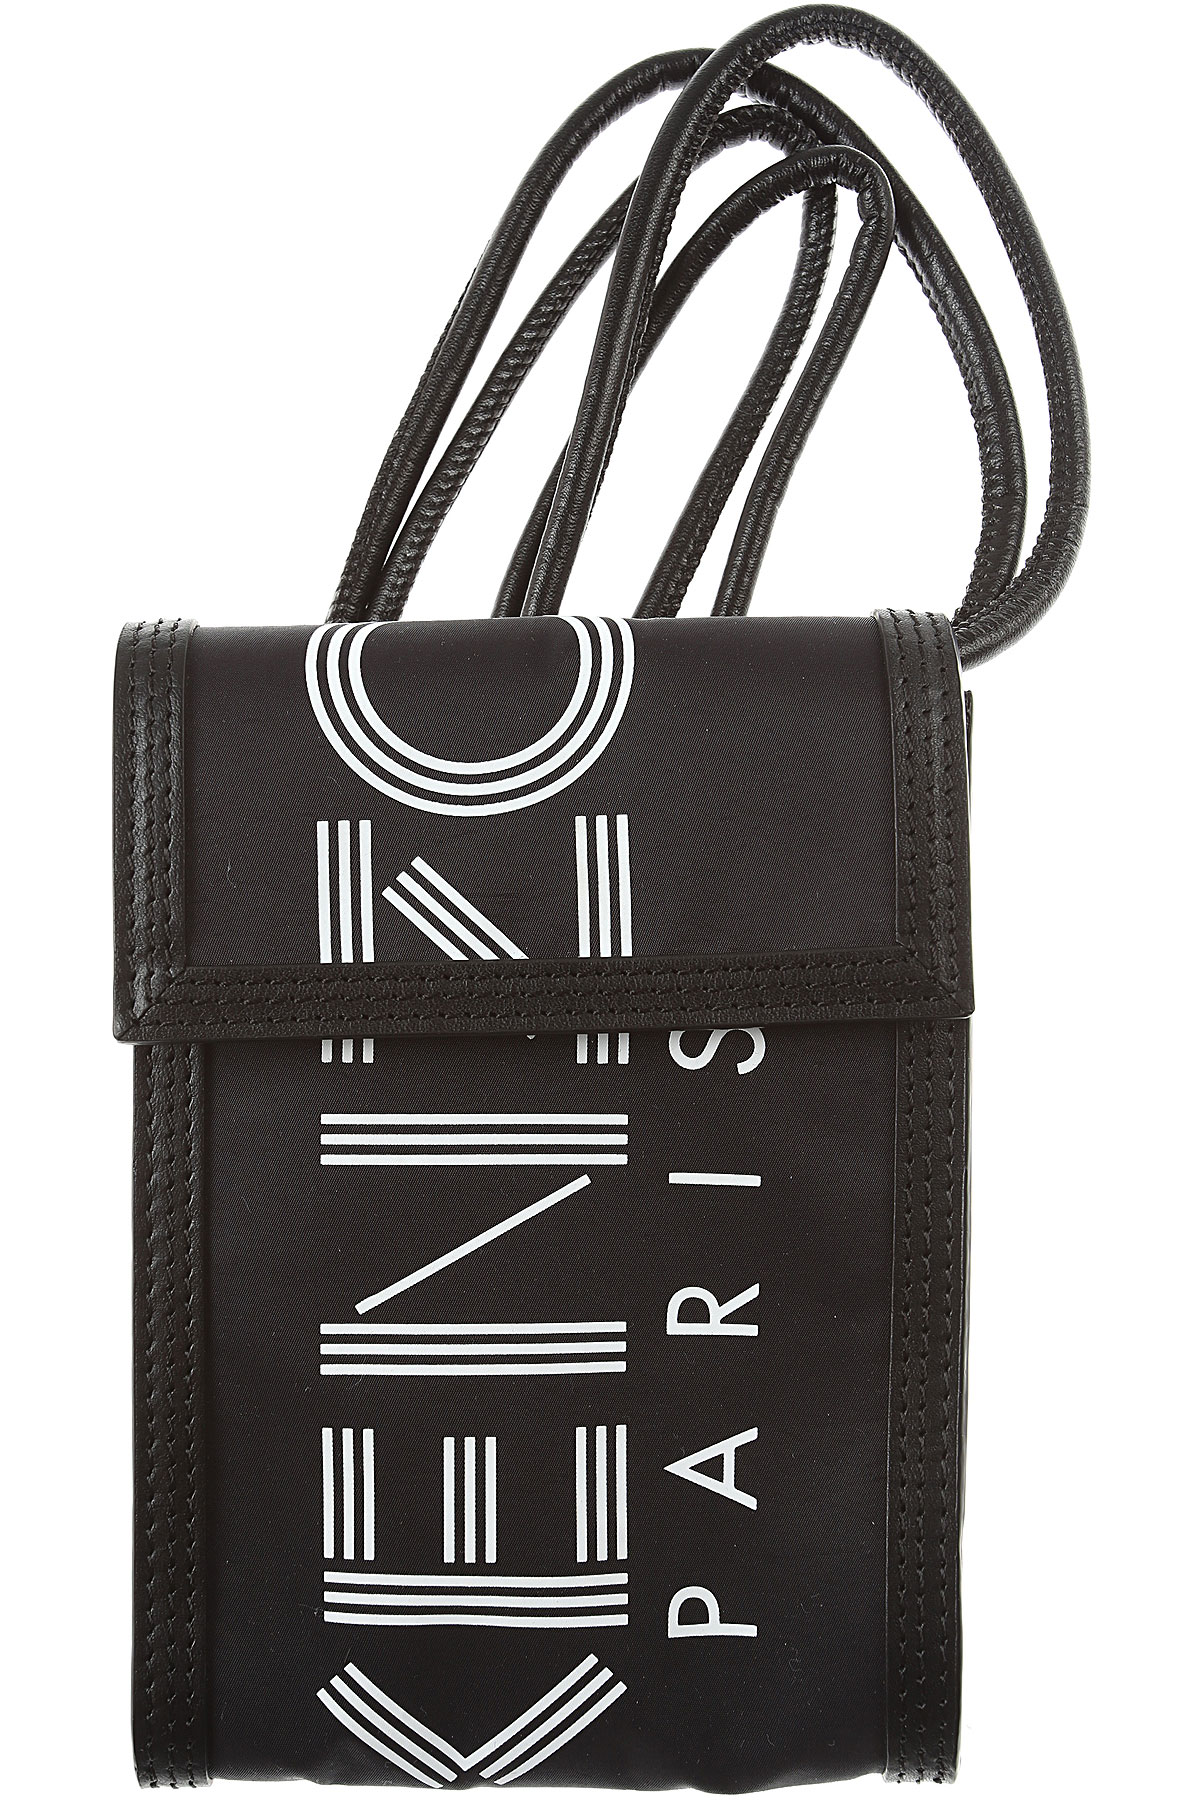 Kenzo Briefcases, Black, polyester, 2019